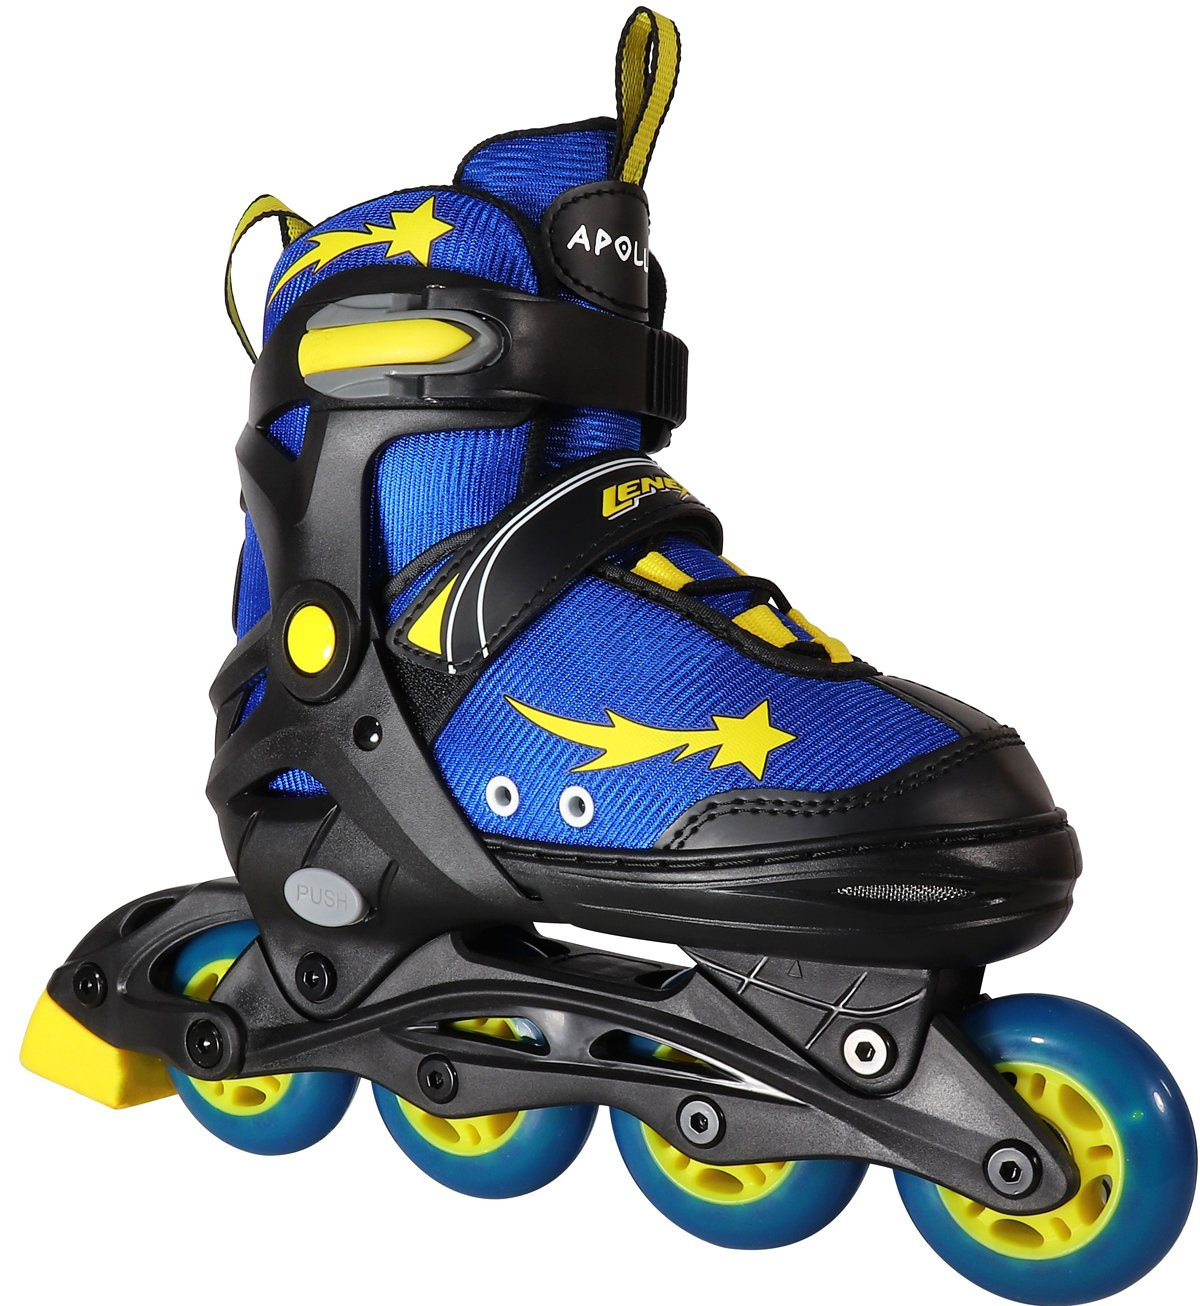 Lenexa Inline Skates for Girls and Boys with Adjustable Sizing Apollo Kids in-line roller skate blades | Comfortable fit | Safety non-slip wheels | Made for Fun (Blue/Yellow/Black)